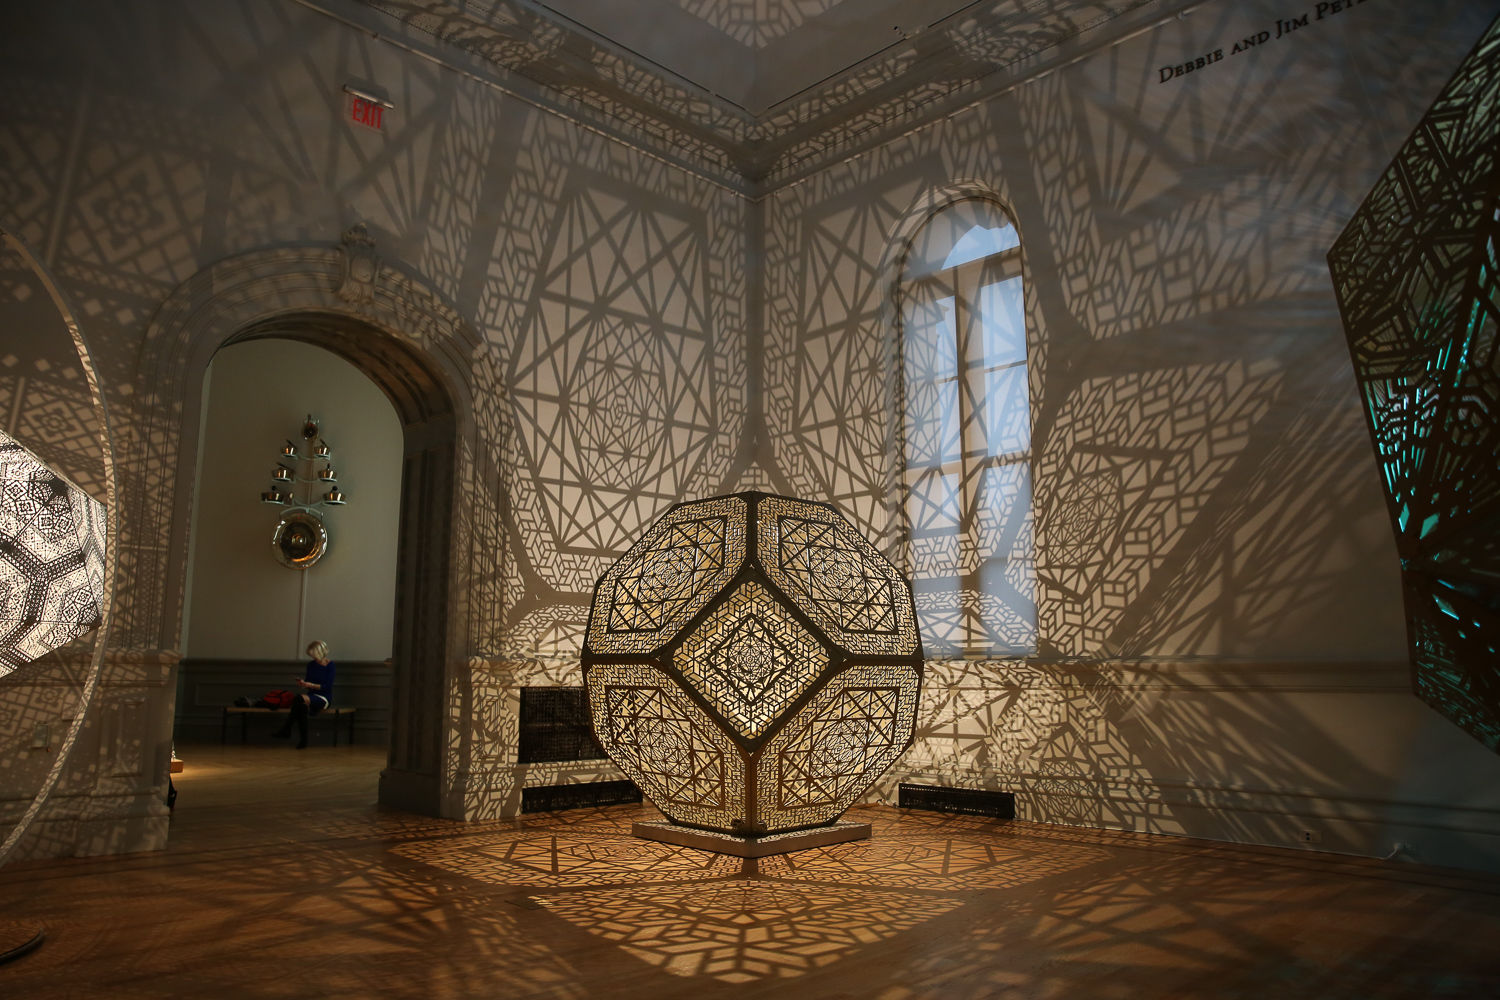 There's nothing quite like Burning Man, but visitors to the Renwick Gallery of the Smithsonian American Art Museum can now get their taste of the Playa. The multi-disciplinary installation is meant for interaction. The exhibits include psychedelic-looking mushrooms that glow and respond to your steps and a room where visitors can lay back and watch digital butterflies float across the screen. There's no shortage of high-tech art too - there's a VR experience and a mobile movie theater inside the gallery. The exhibition opens on March 30 and will run until January 21, 2019. (Amanda Andrade-Rhoades/DC Refined)